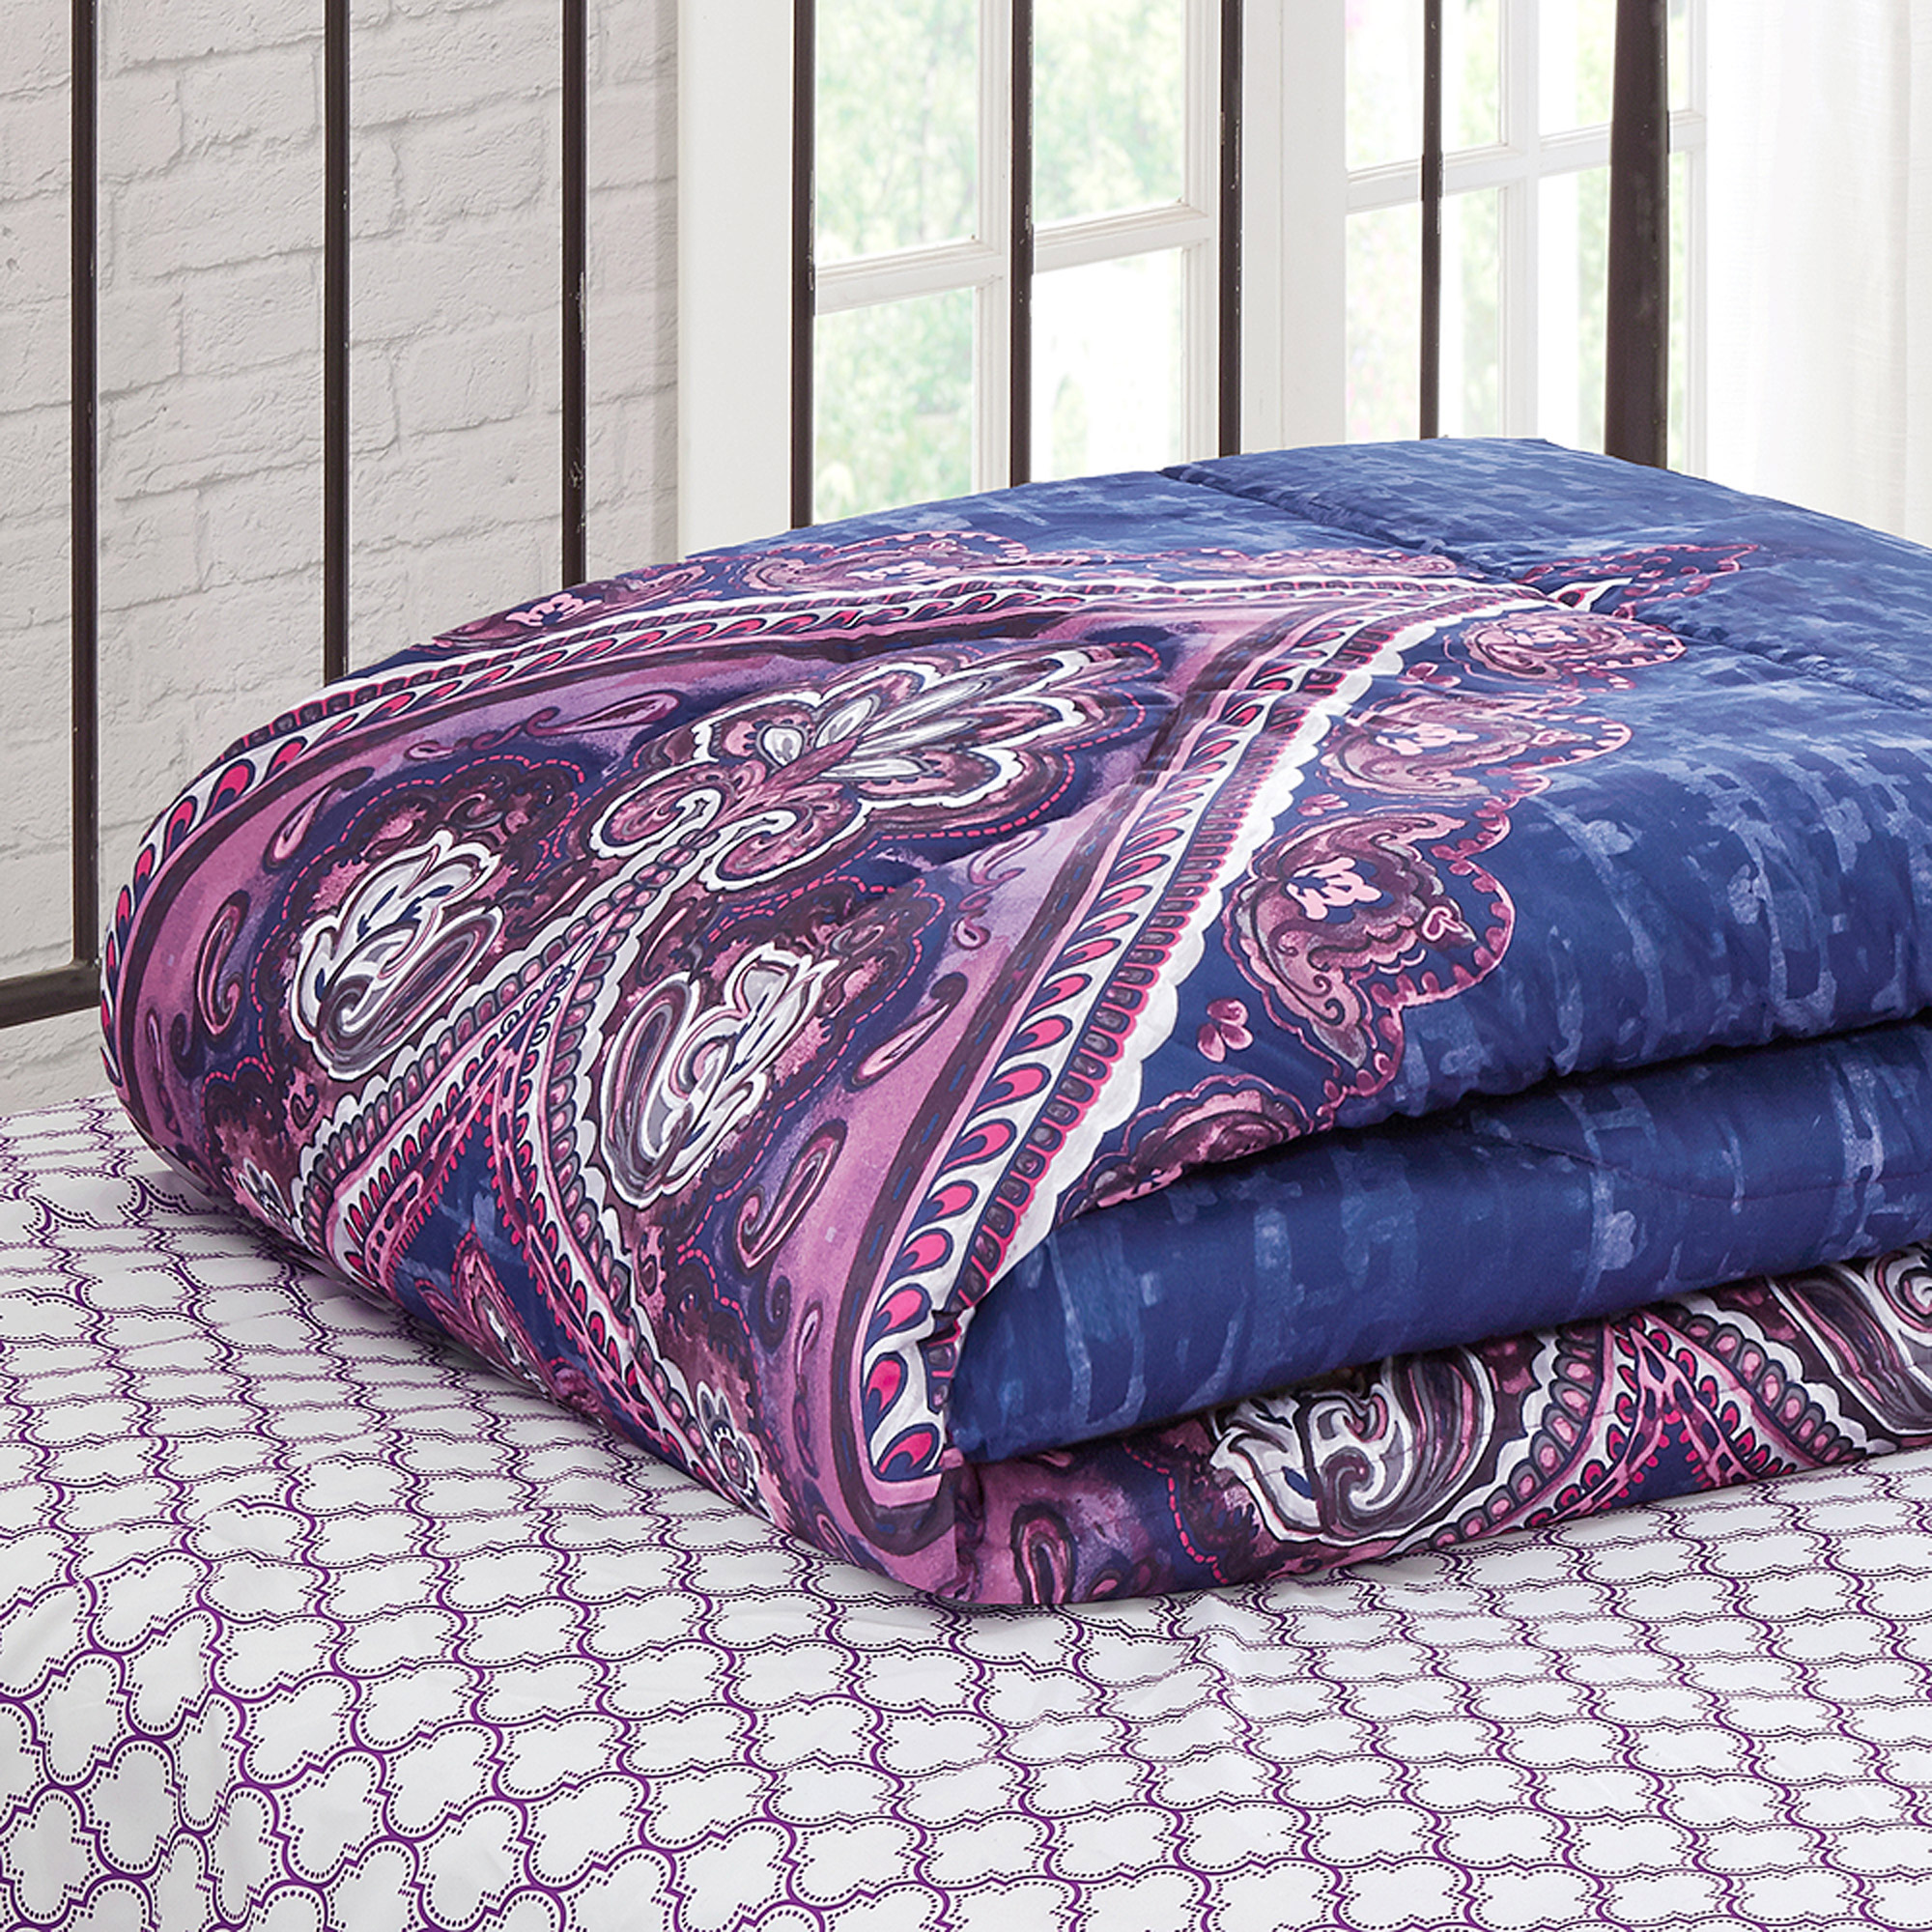 exceptional Purple Queen Size Comforter Part - 16: Mainstays Grace Medallion Purple Bed in a Bag Complete Bedding Set -  Walmart.com